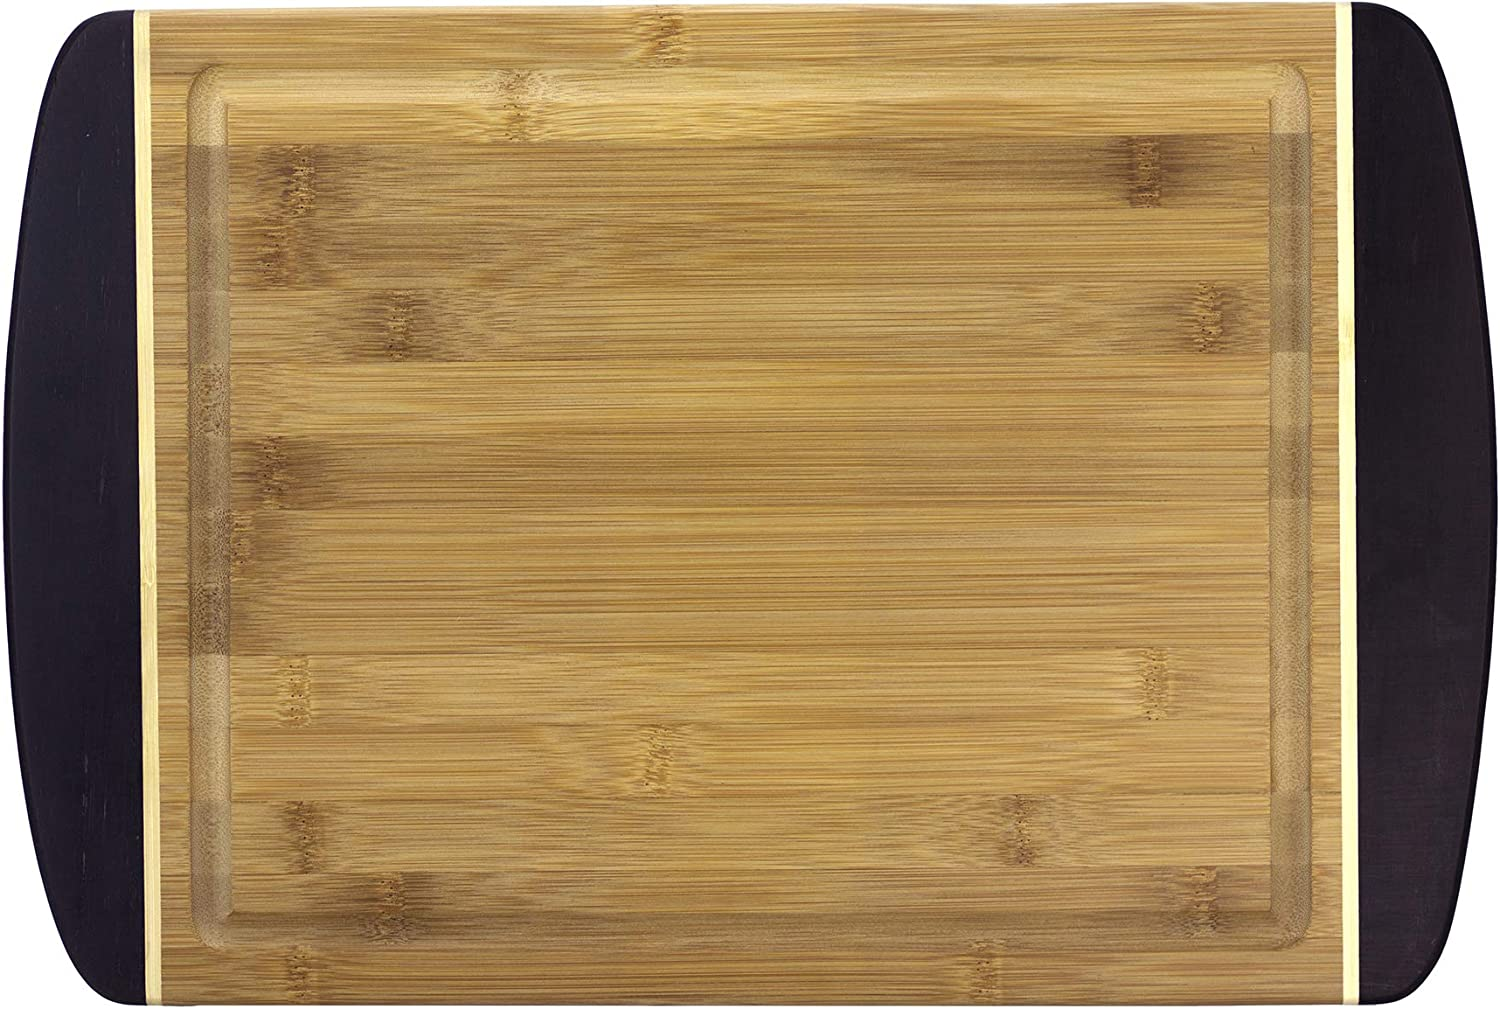 Totally Bamboo 13-Inch Red Grippy Groove Cutting Board 20-1712